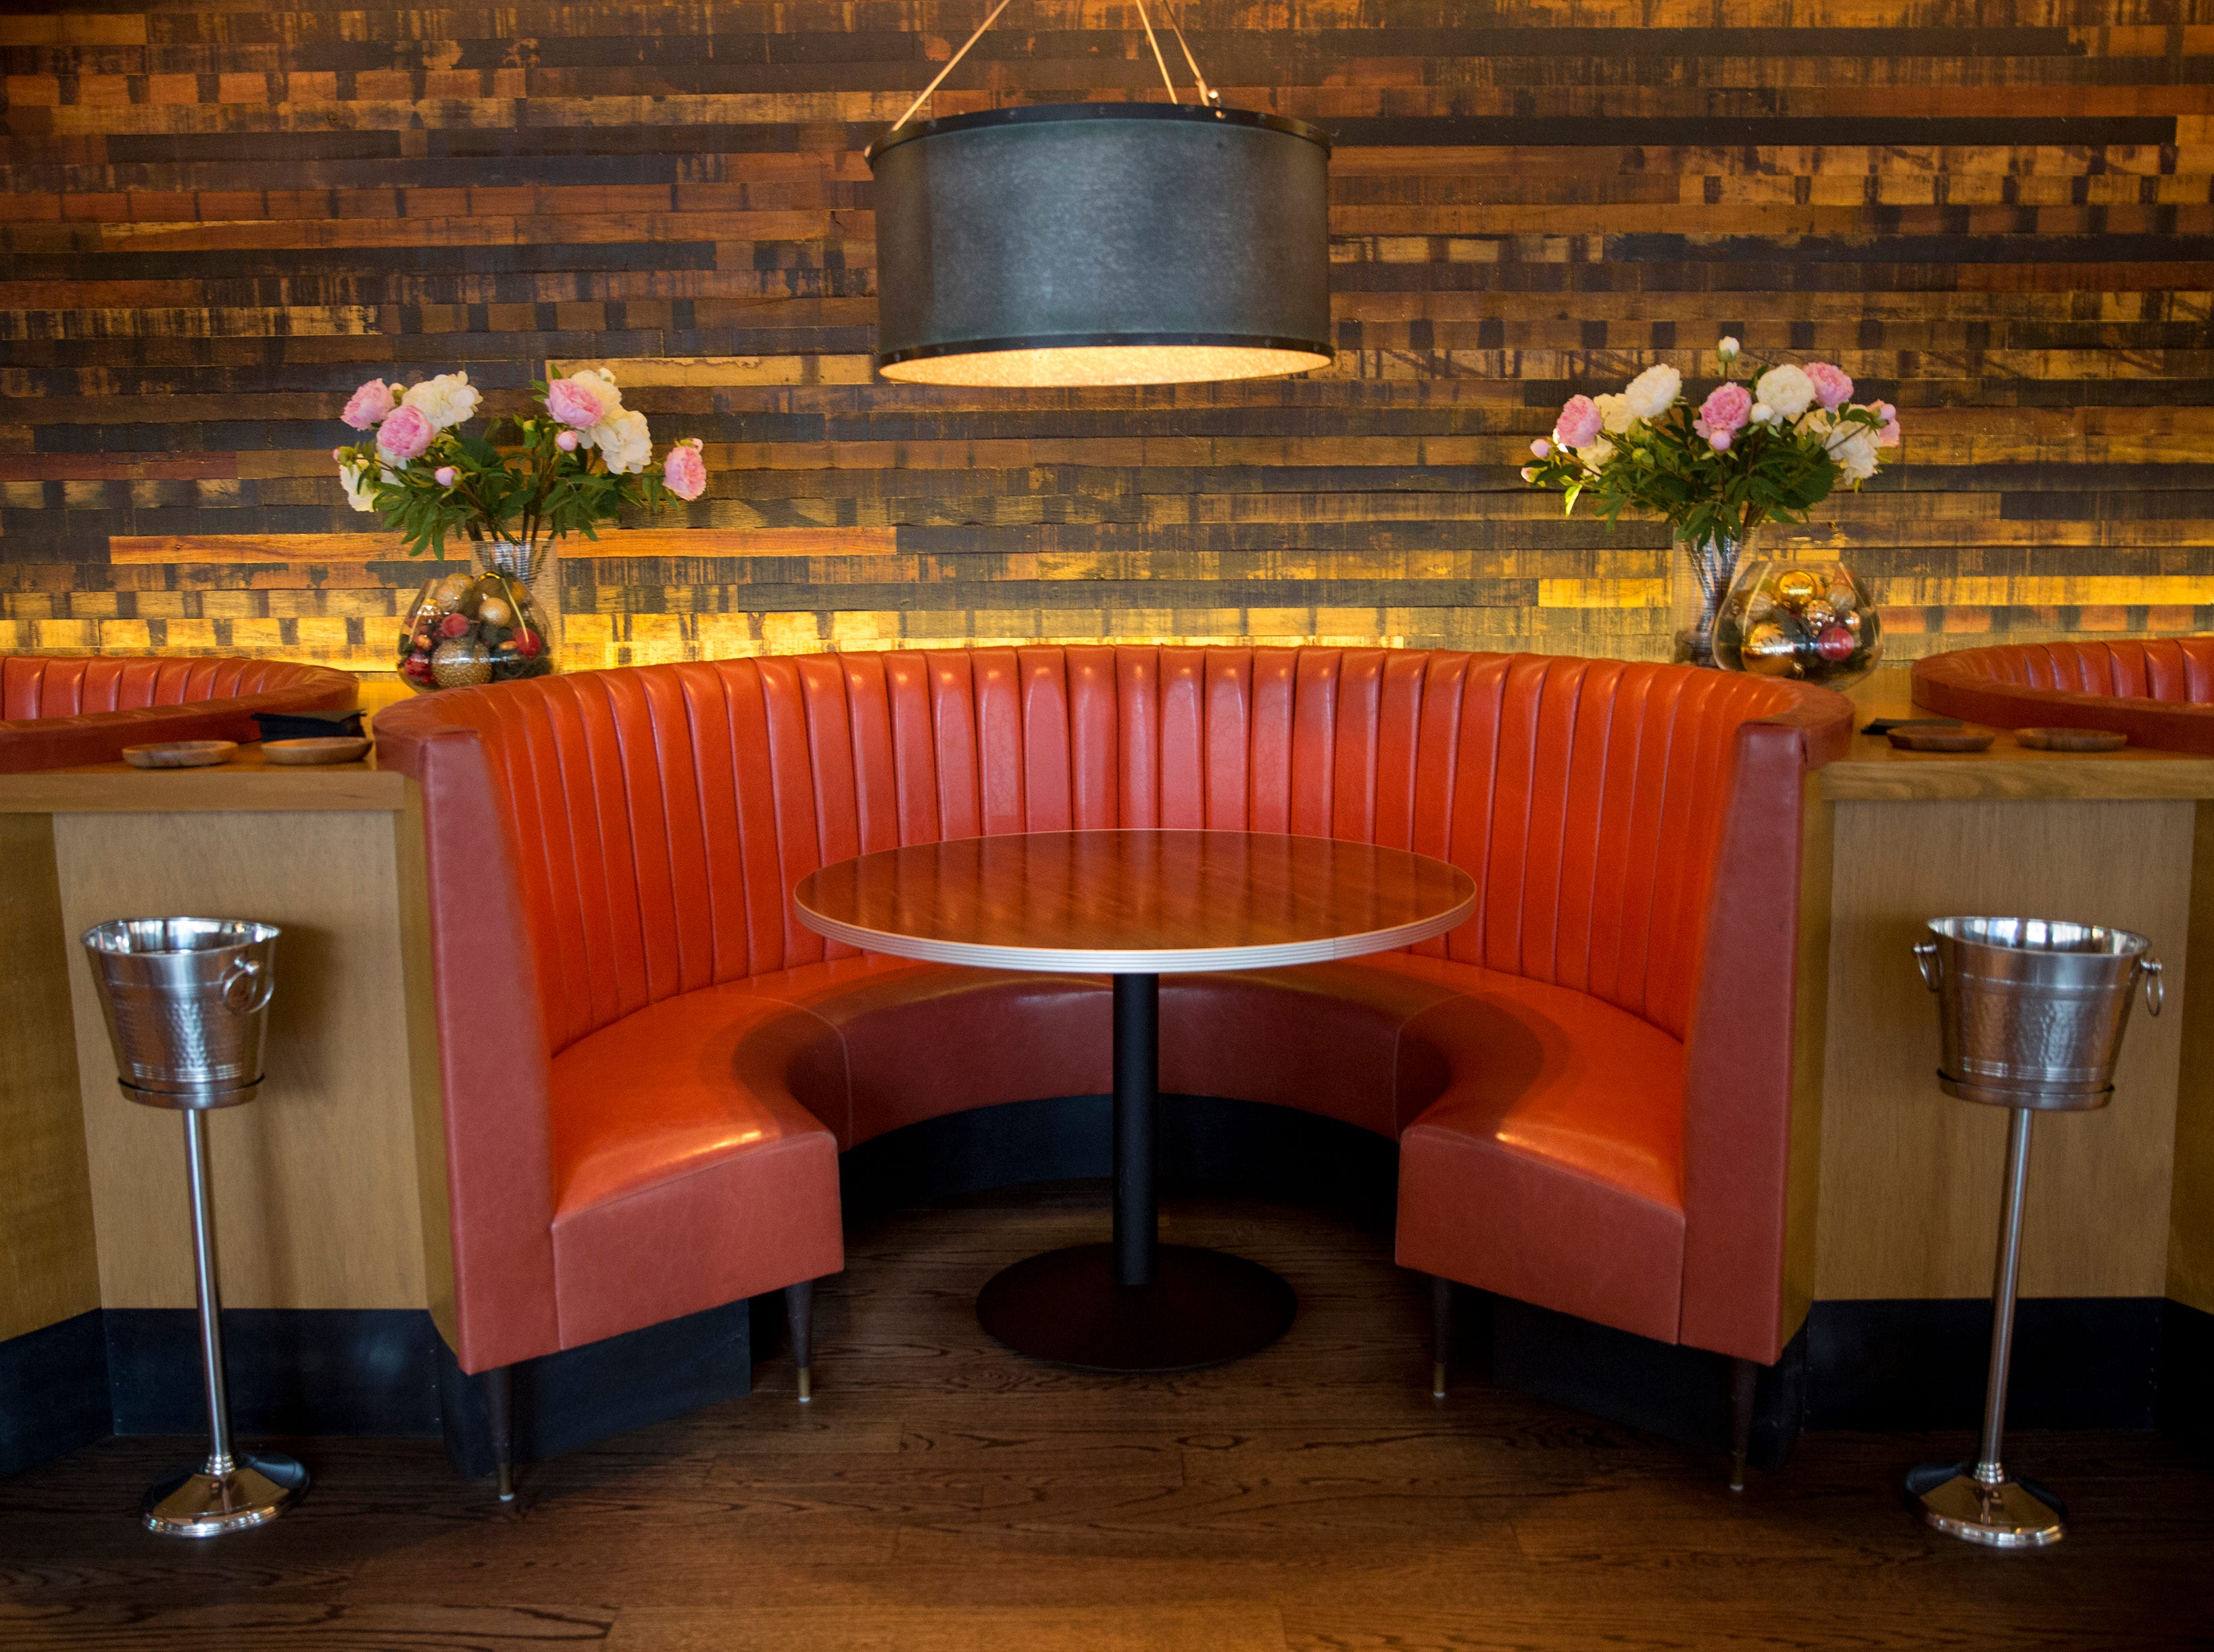 The dining area at The Mercer on Vine Street in Over-the-Rhine. The restaurant has been serving Italian-Eureopen food since 2014. The owner, Jon Zipperstein, also owns Kaze, just up the block and Embers in Madeira. Emmy Friedrichs is the manager.